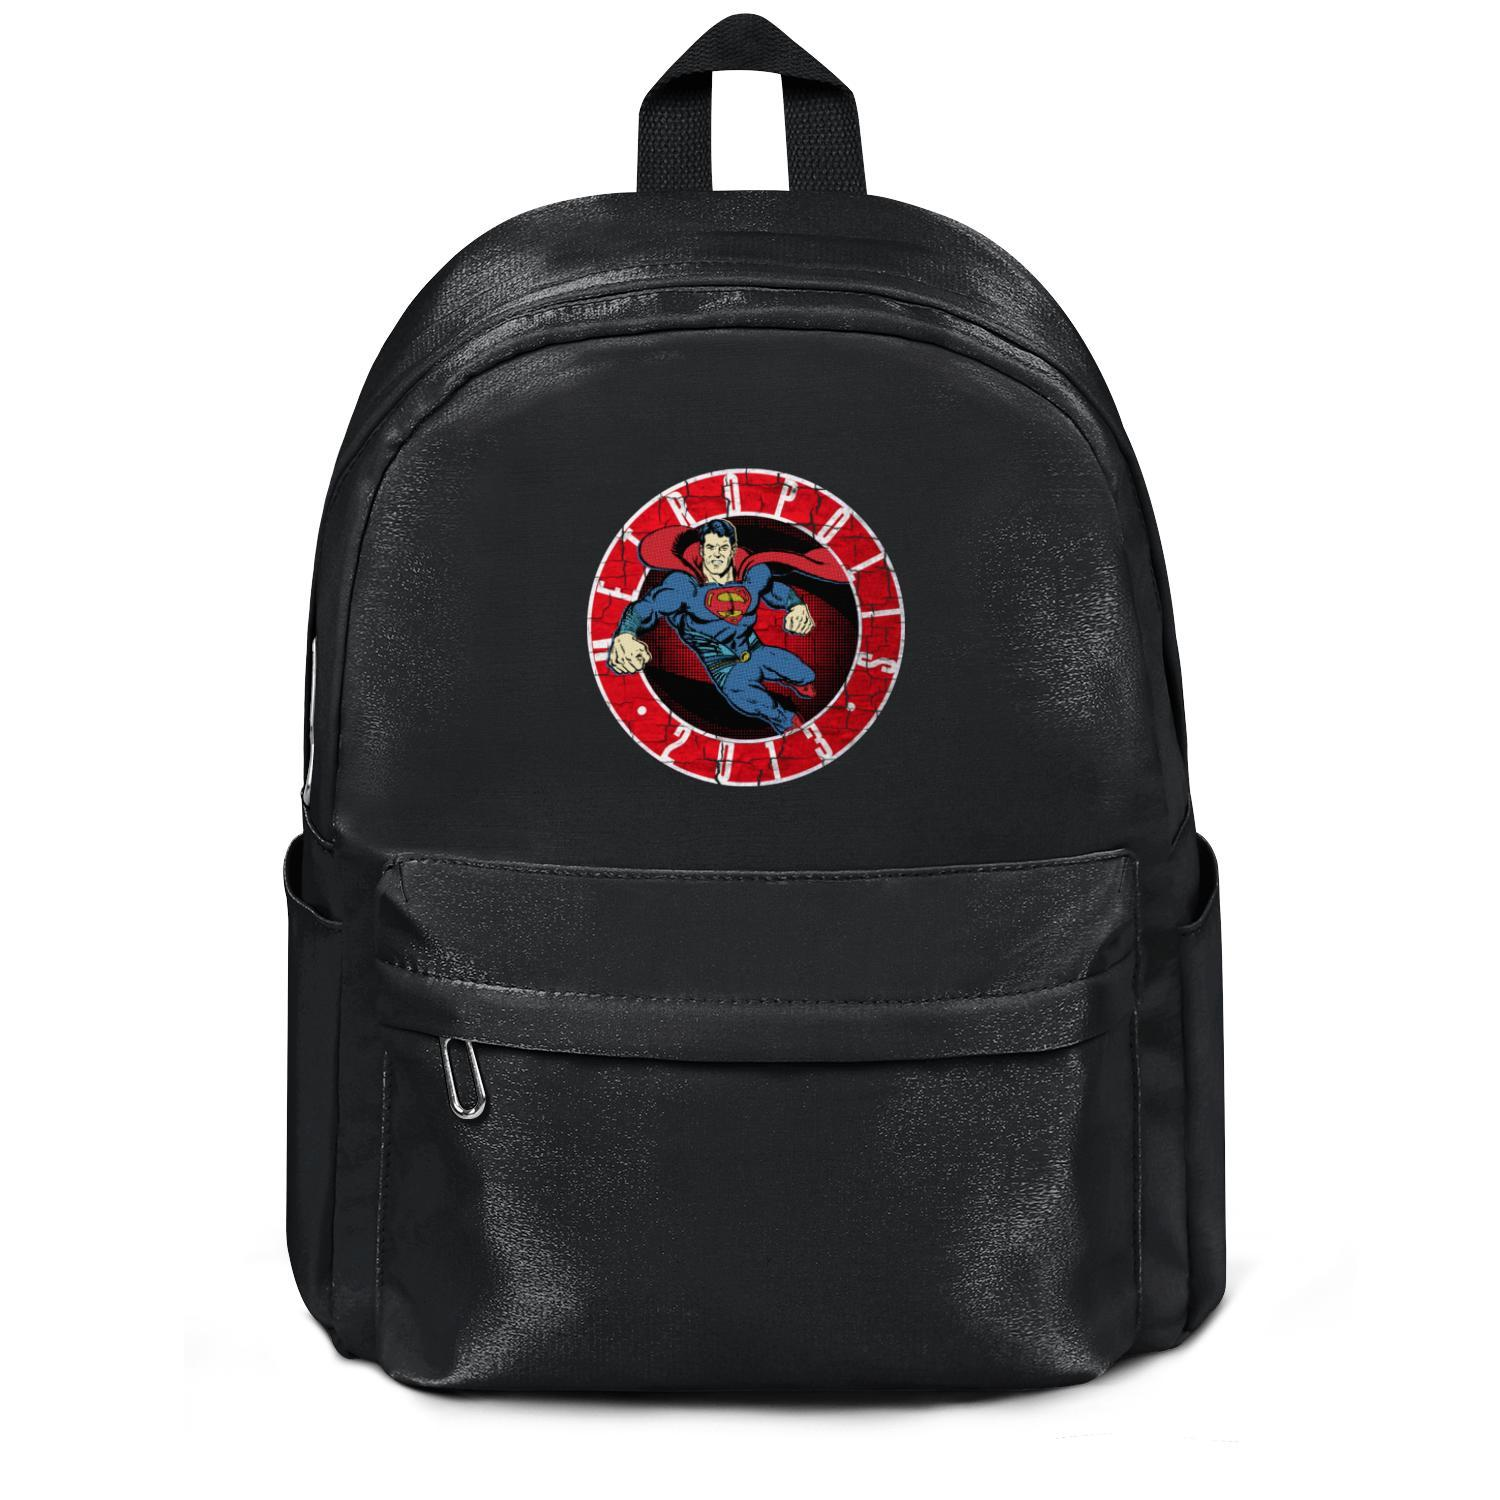 Package,backpack Supes 75th Metropolis 2013 GeekSummit Superman celebration black fashion personalizedpackage convenient sports athleticback